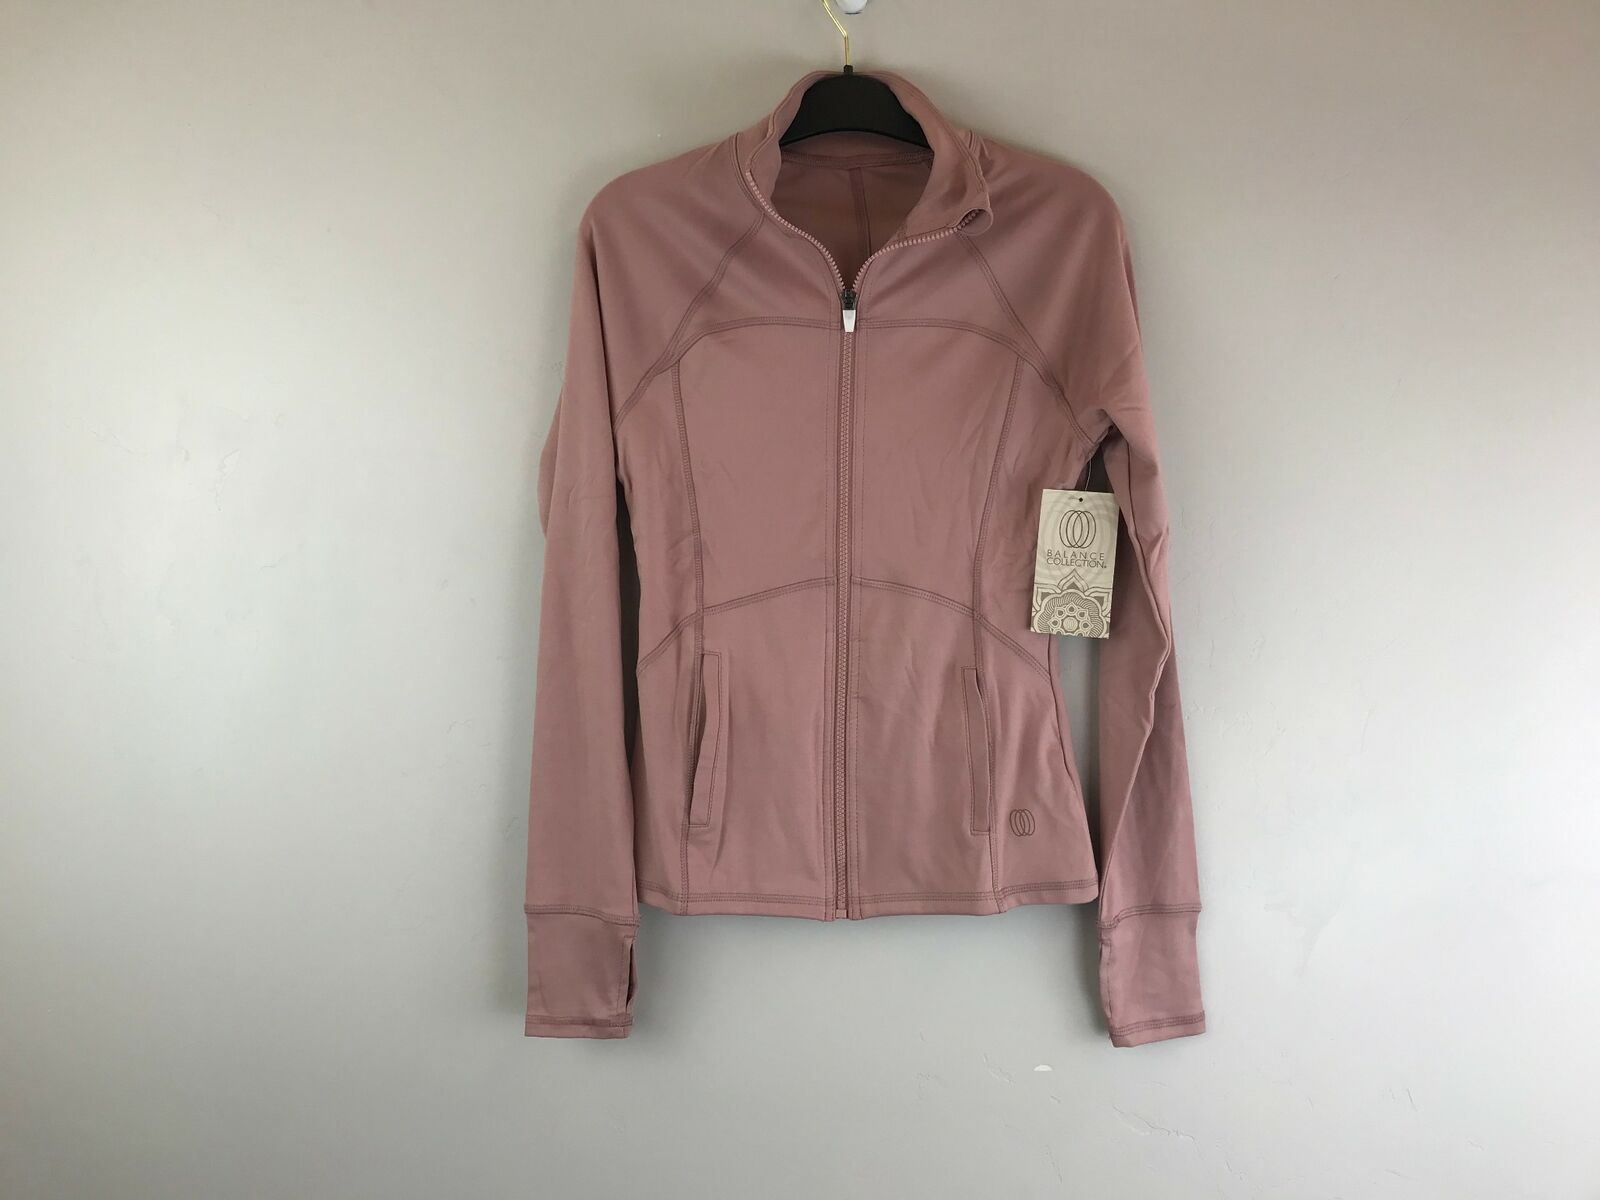 Women's Balance Collection Fitness Zip Up Jacket W/ Pockets, Size M - Pink